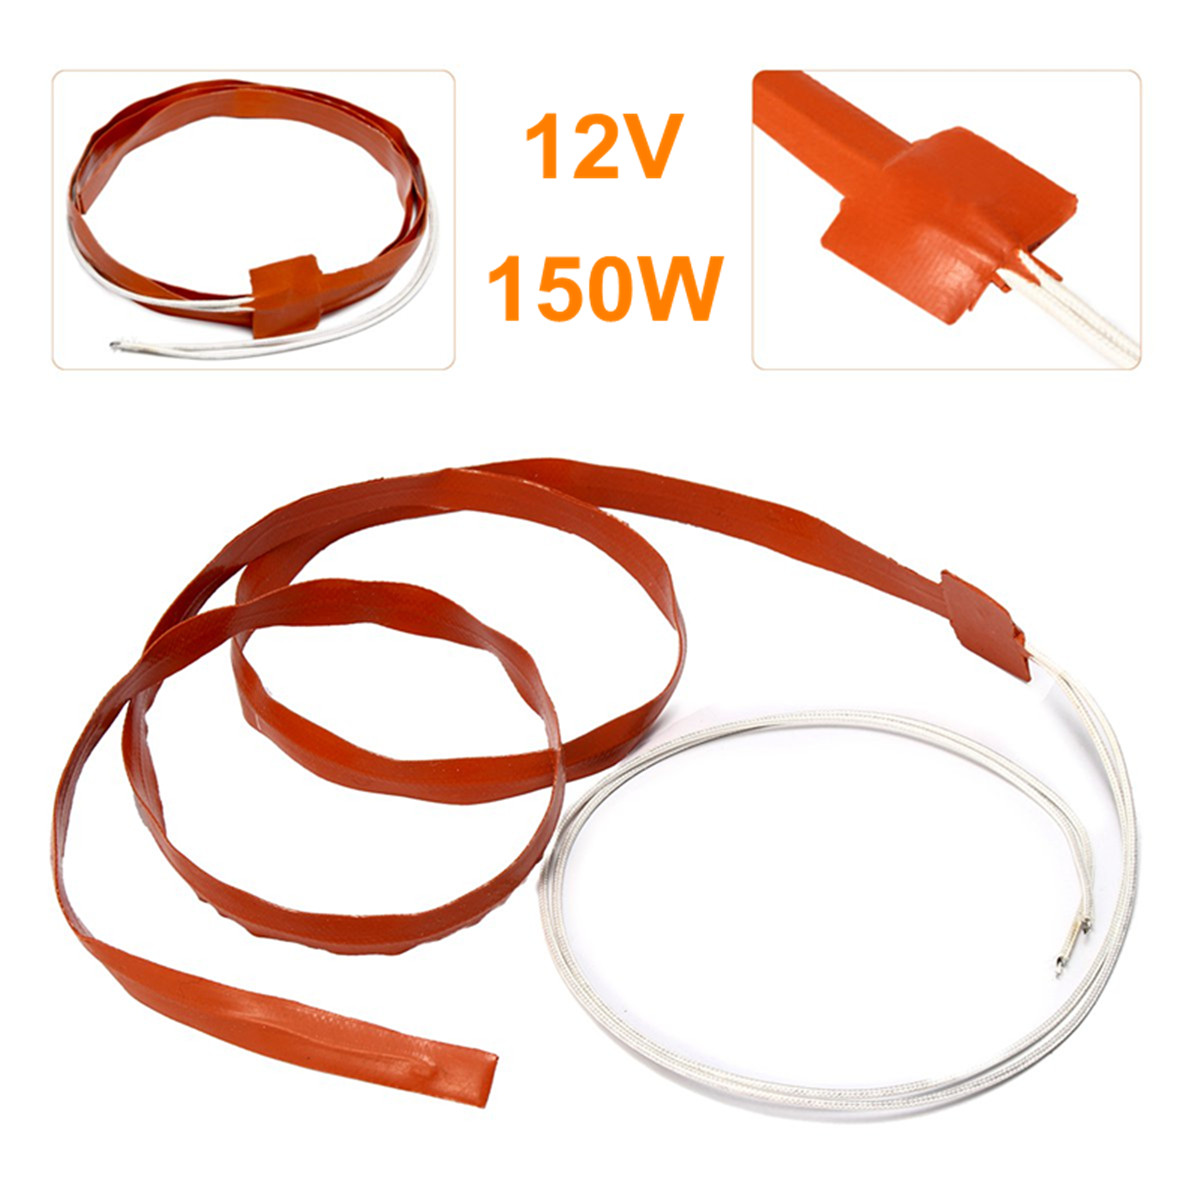 1.2m 150W 12V WVO Intake Pipe Injection Line Manifold Heater Silicone Heat Strip Heating System Pipeline Thawing Heating Belt